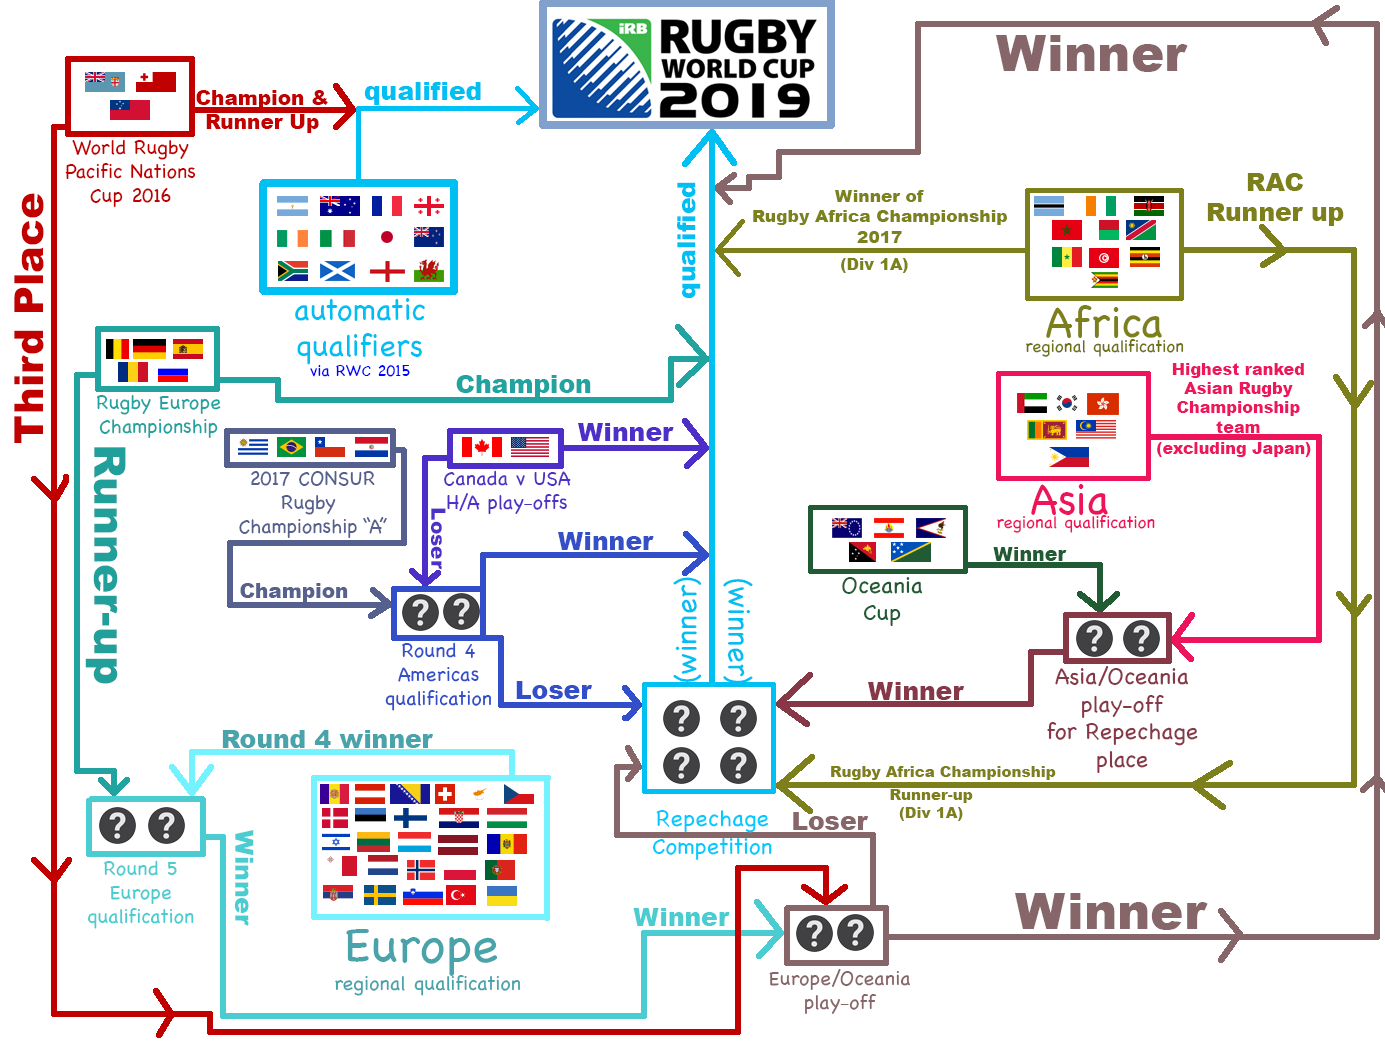 Rugby_World_Cup_2019_Qualification_illustrated